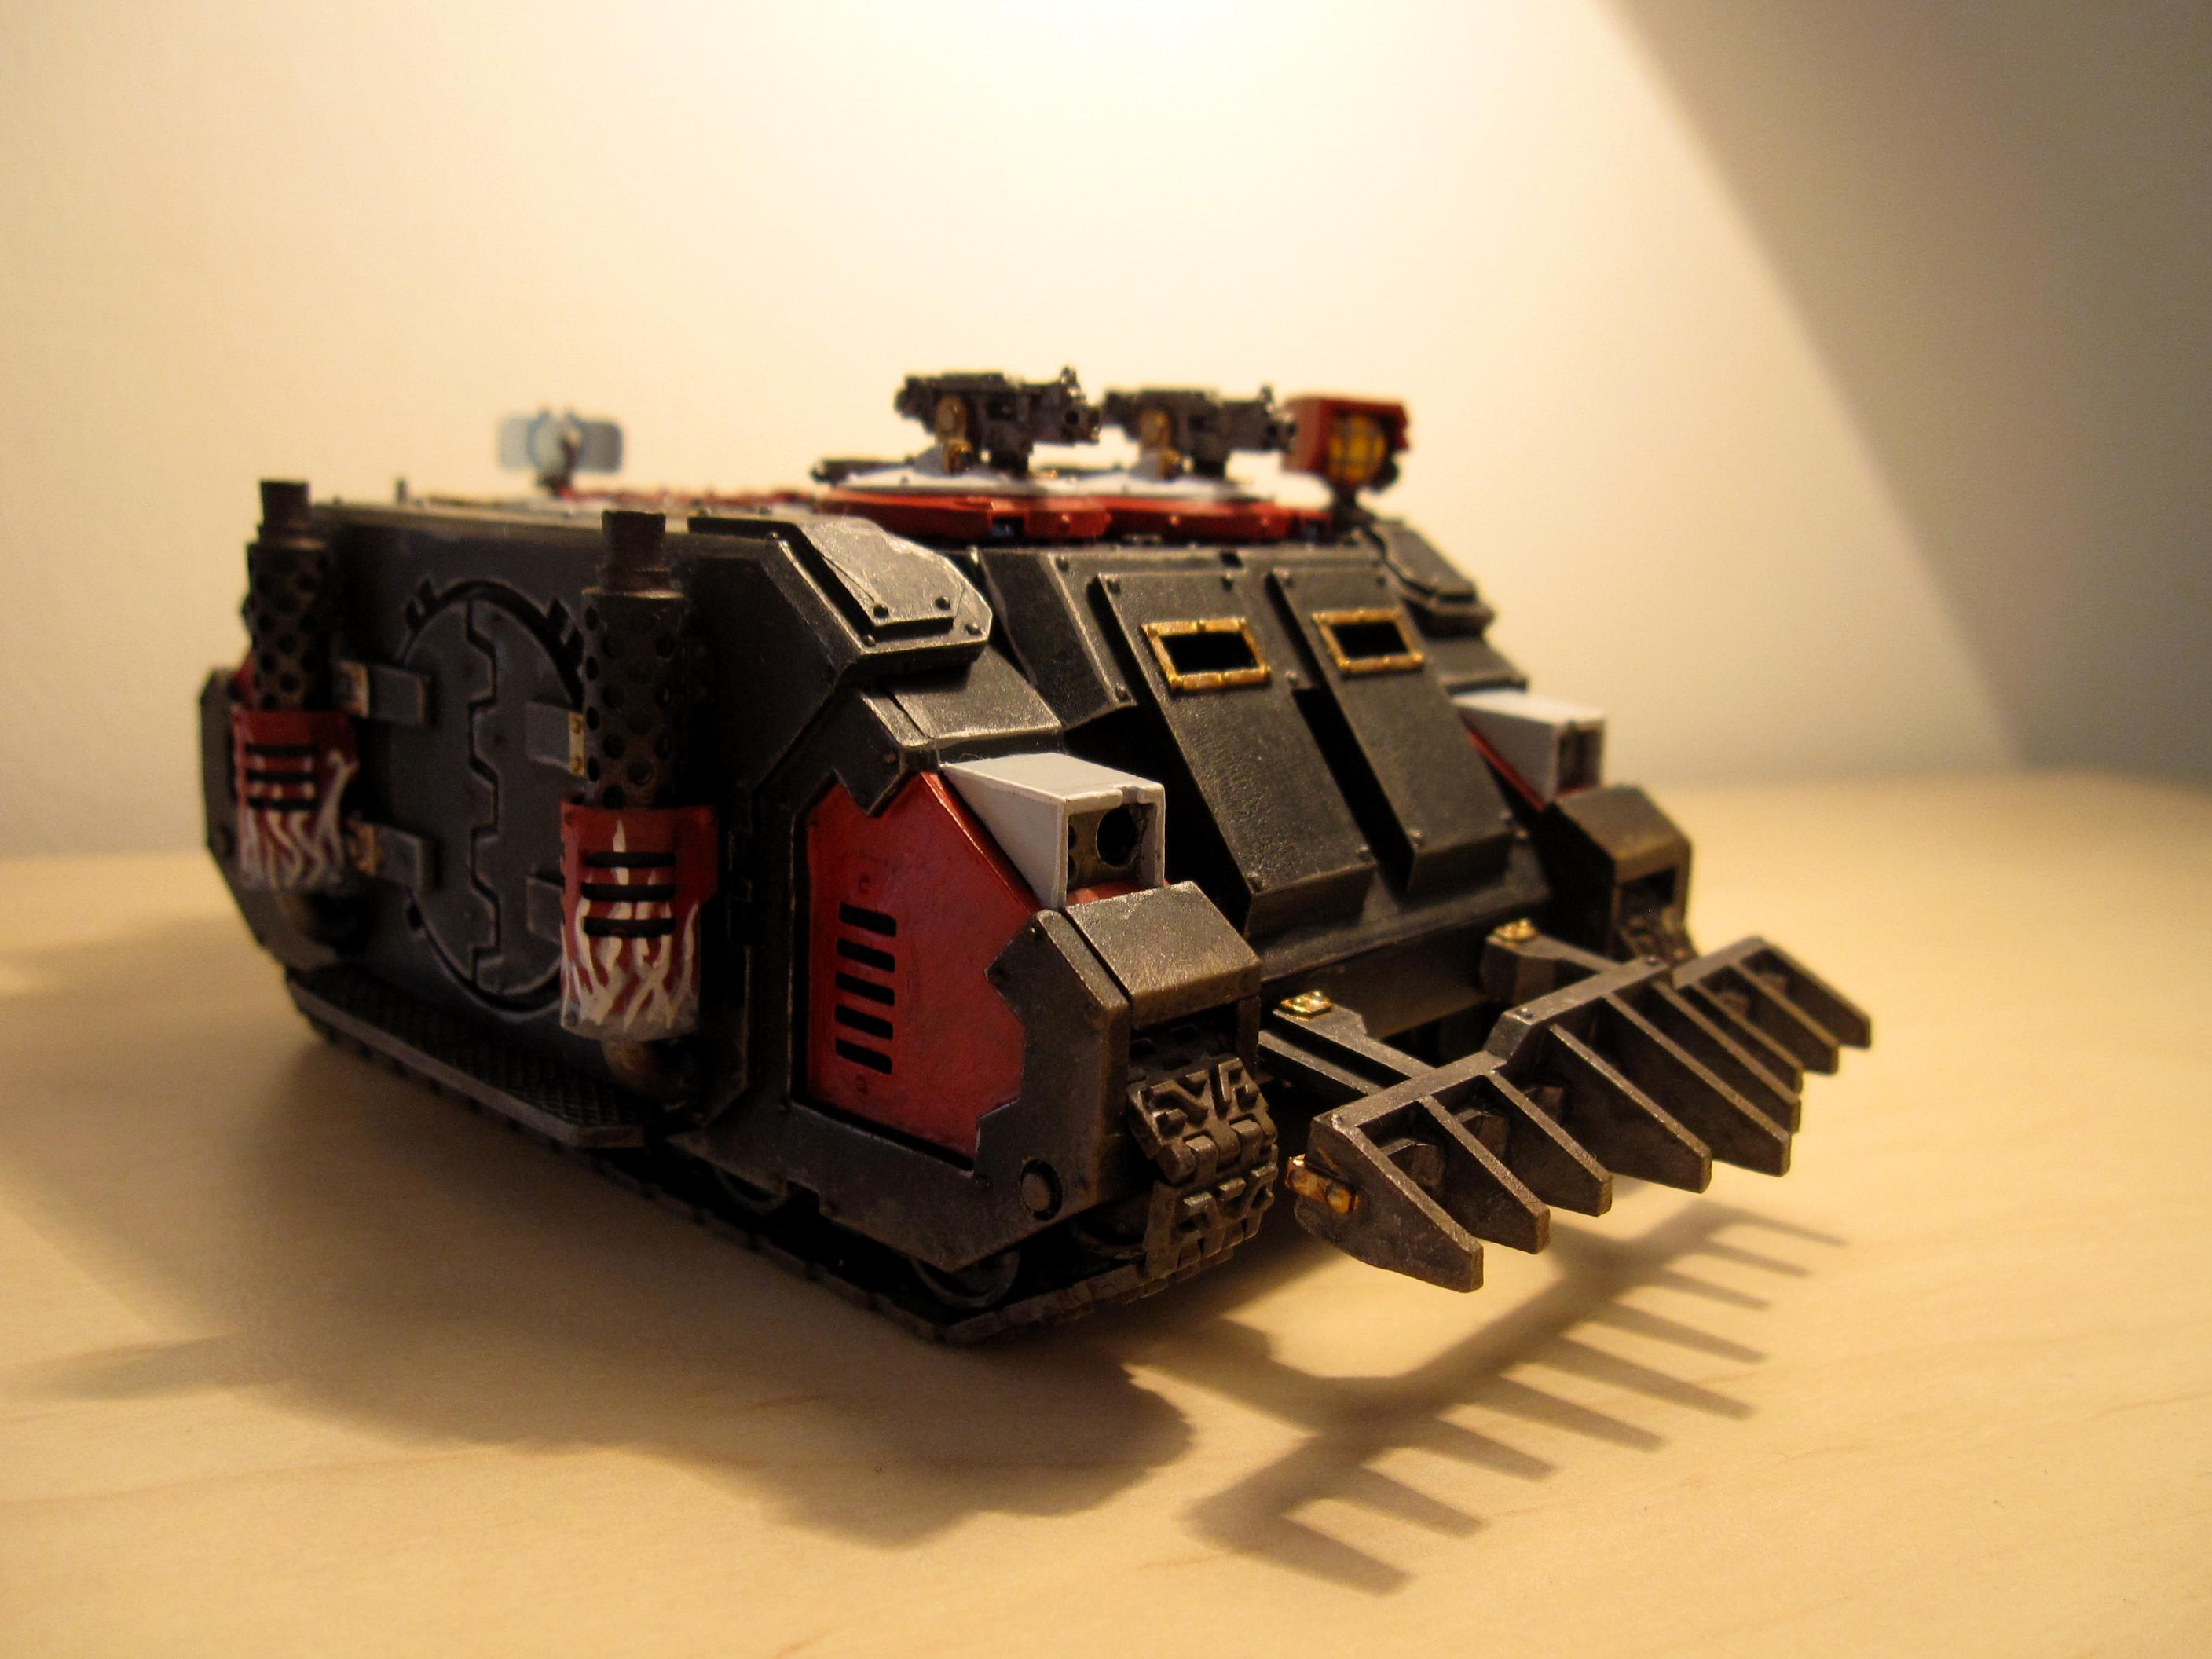 40.000, Deimos, Dirt, Dust, F, Forge, Freehand, G, Grey, Hatch, Hinges, Inquisition, K, Knights, LED, Magnet, Mkic, Pattern, Rhino, Tank, Transport, W, Warhammer 40,000, Weathered, World